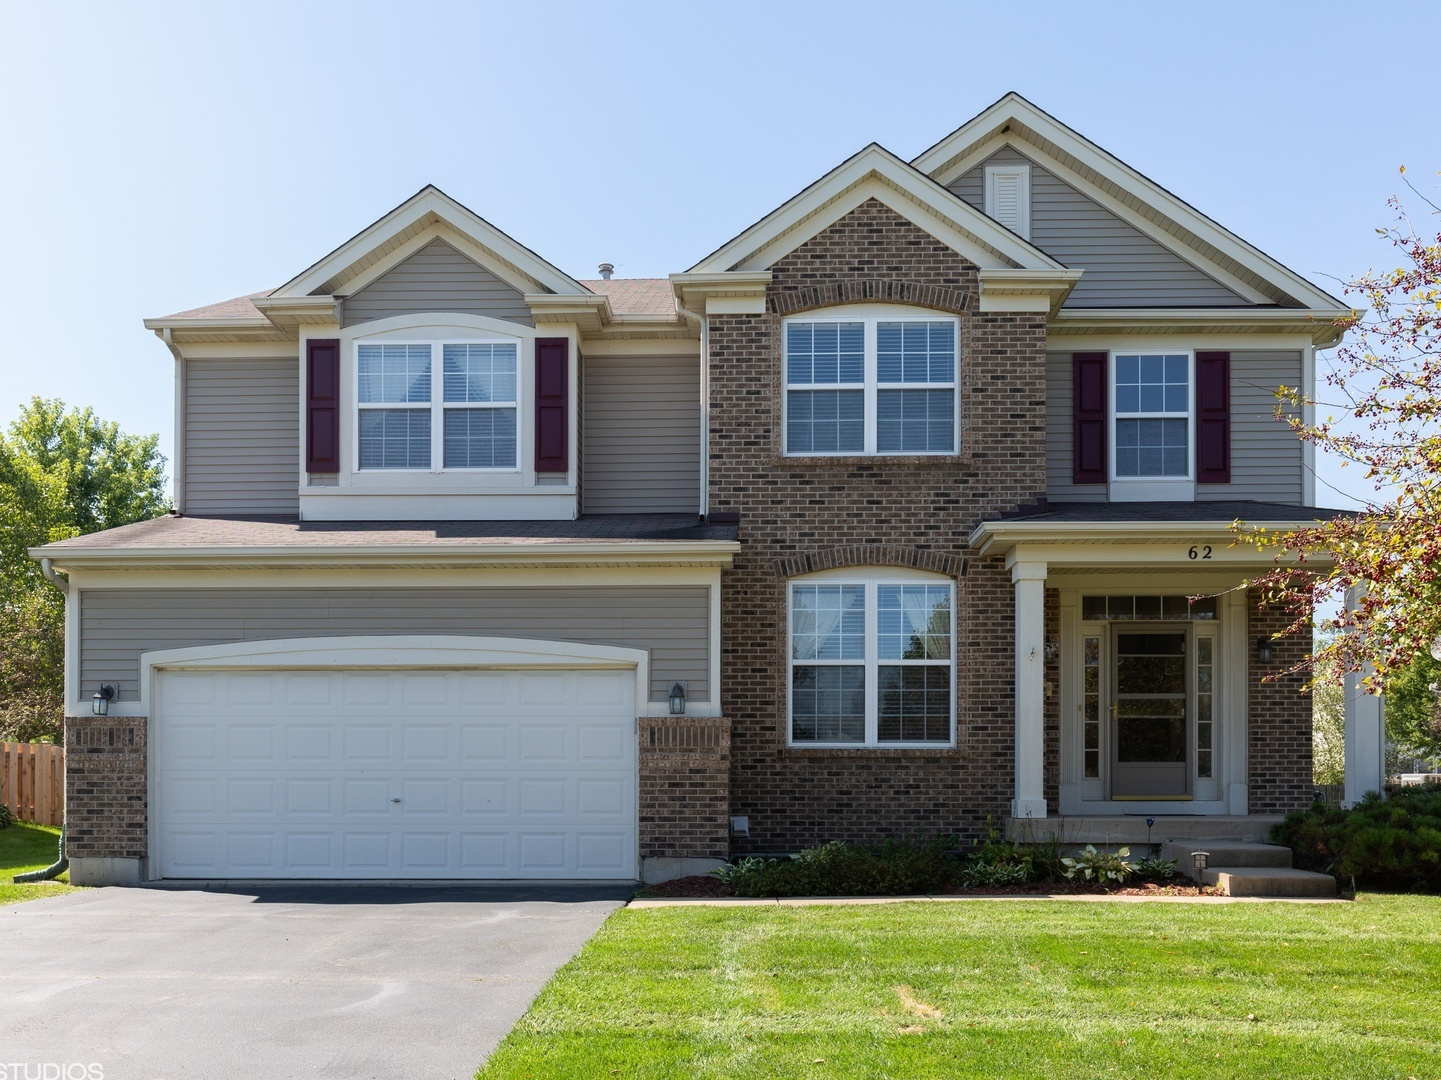 Photo for 62 Meadows Drive, Gilberts, IL 60136 (MLS # 10560662)